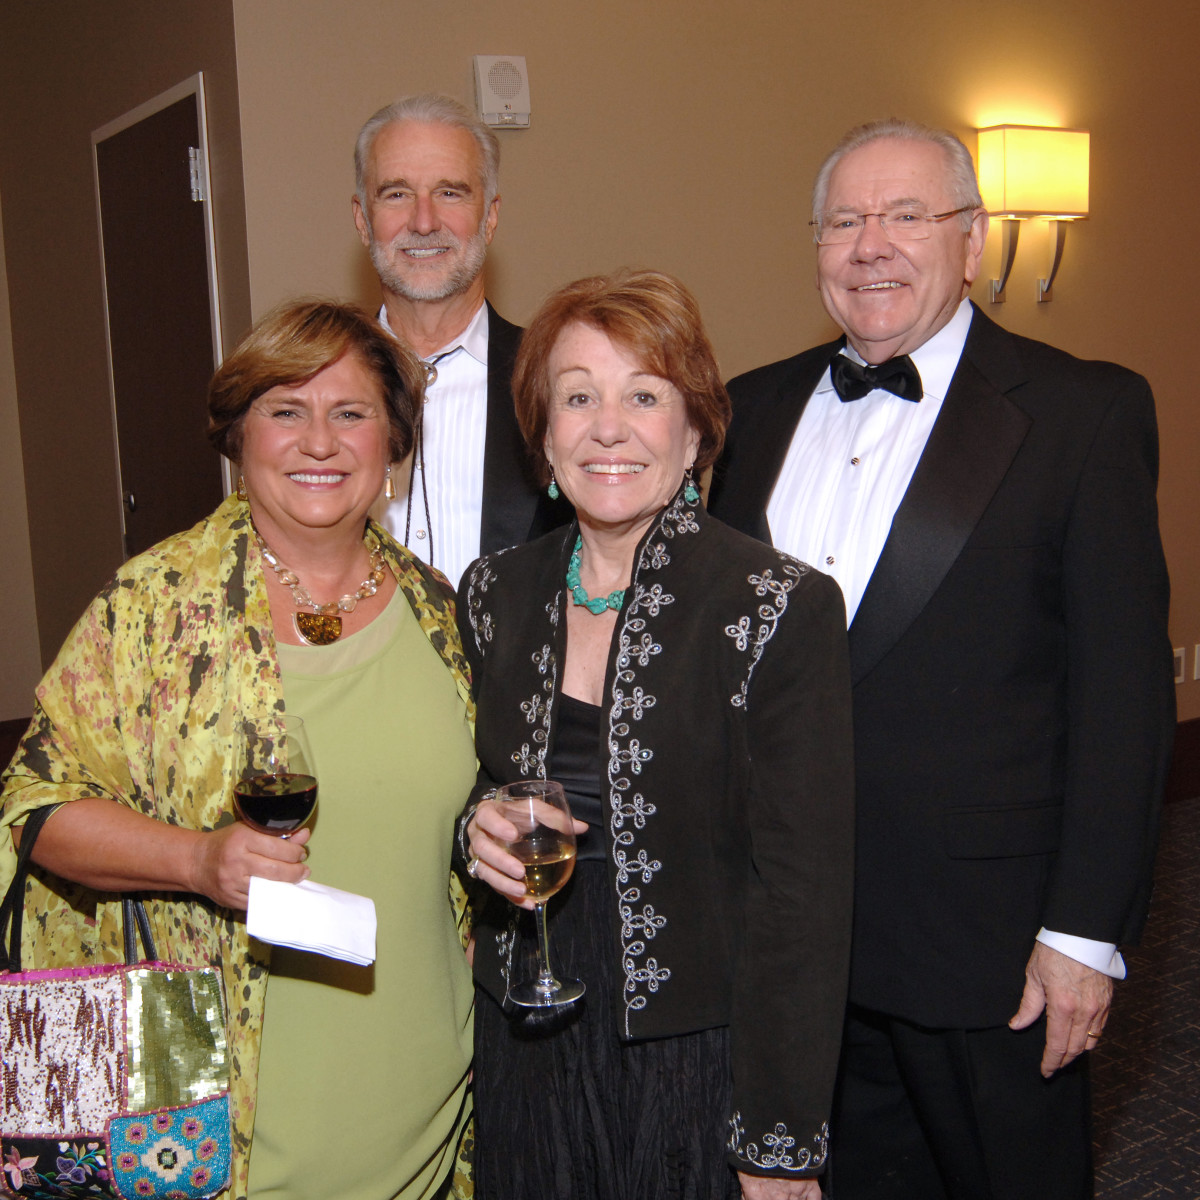 UH Law gala, April 2016, Joanne Miller, Judge Gray Miller, Mary Schneider, Judge Michael Schneider